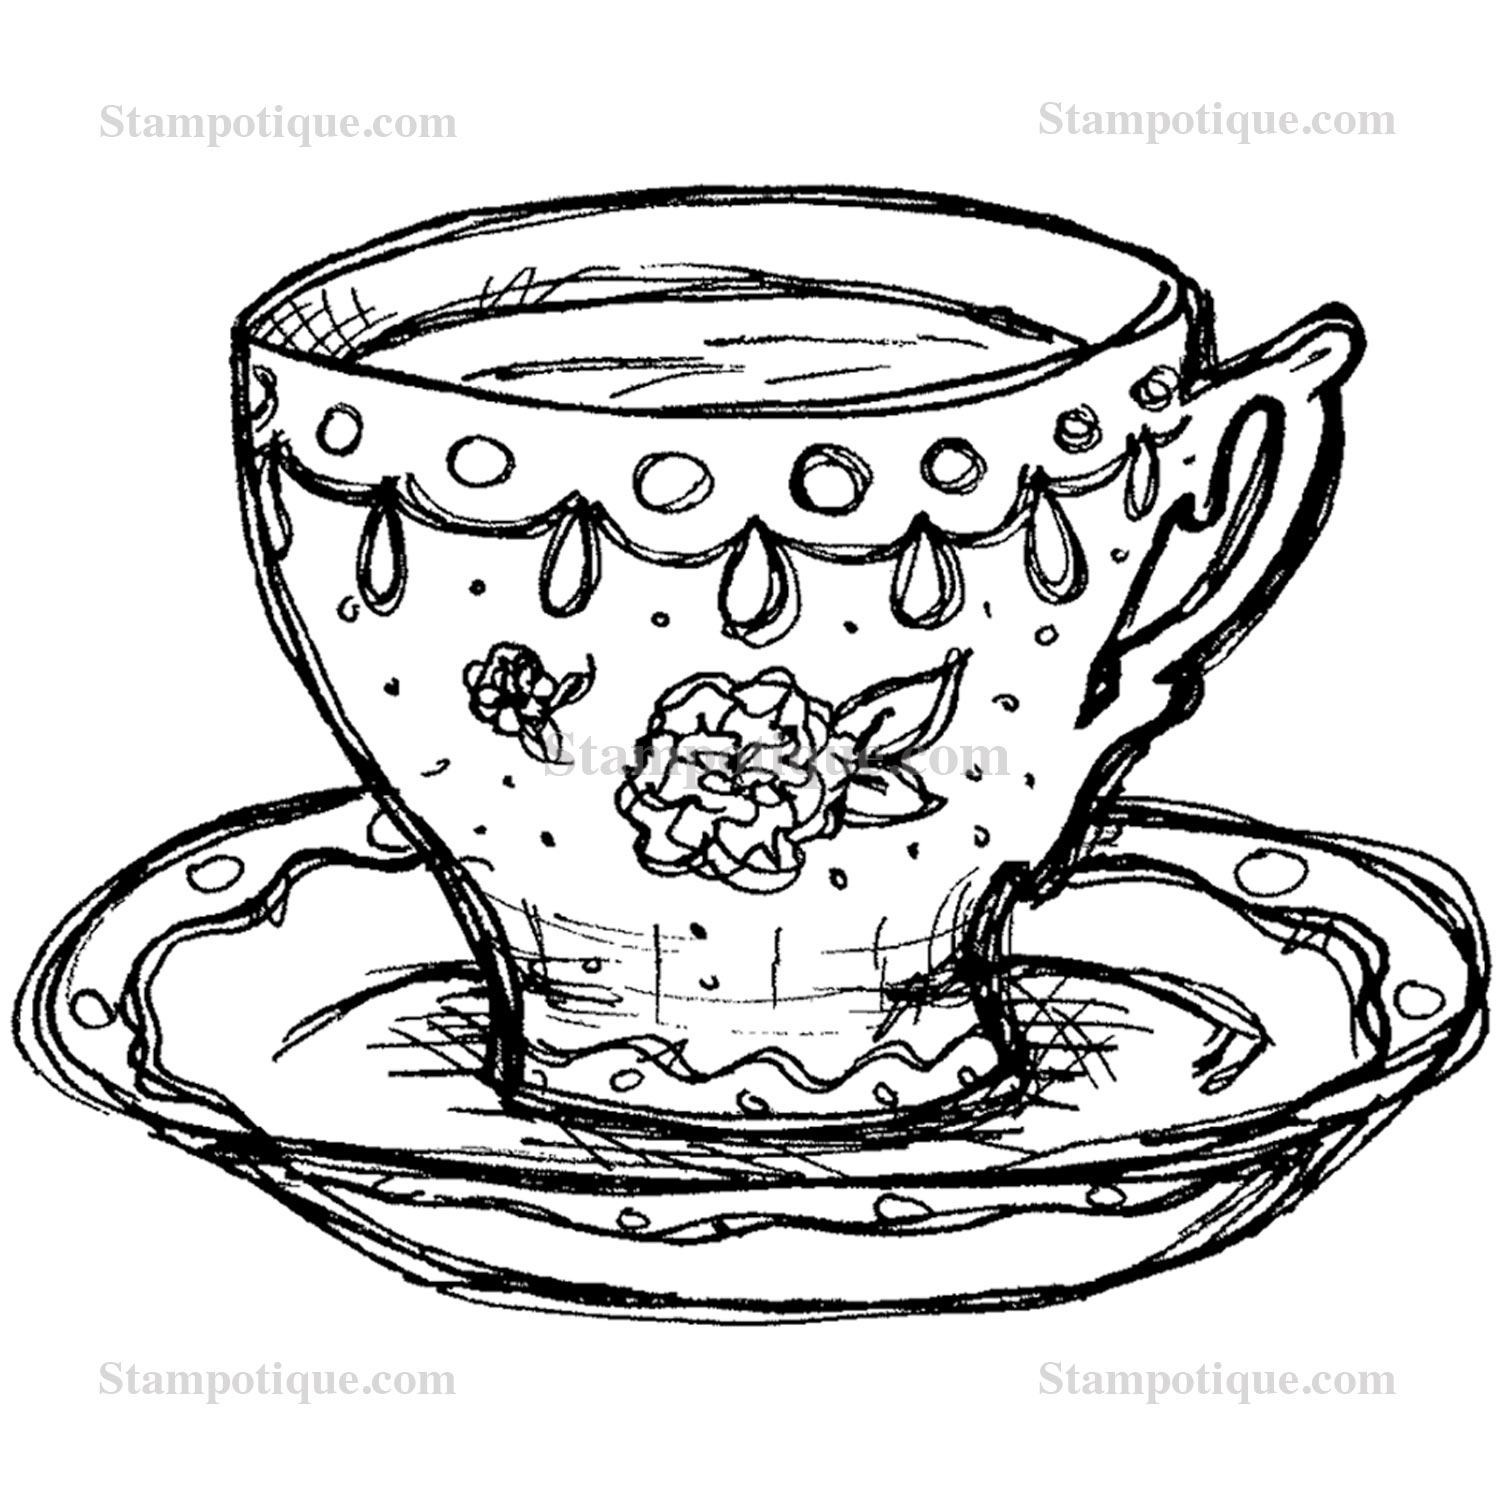 teacup silhouette clip art at getdrawingscom free for